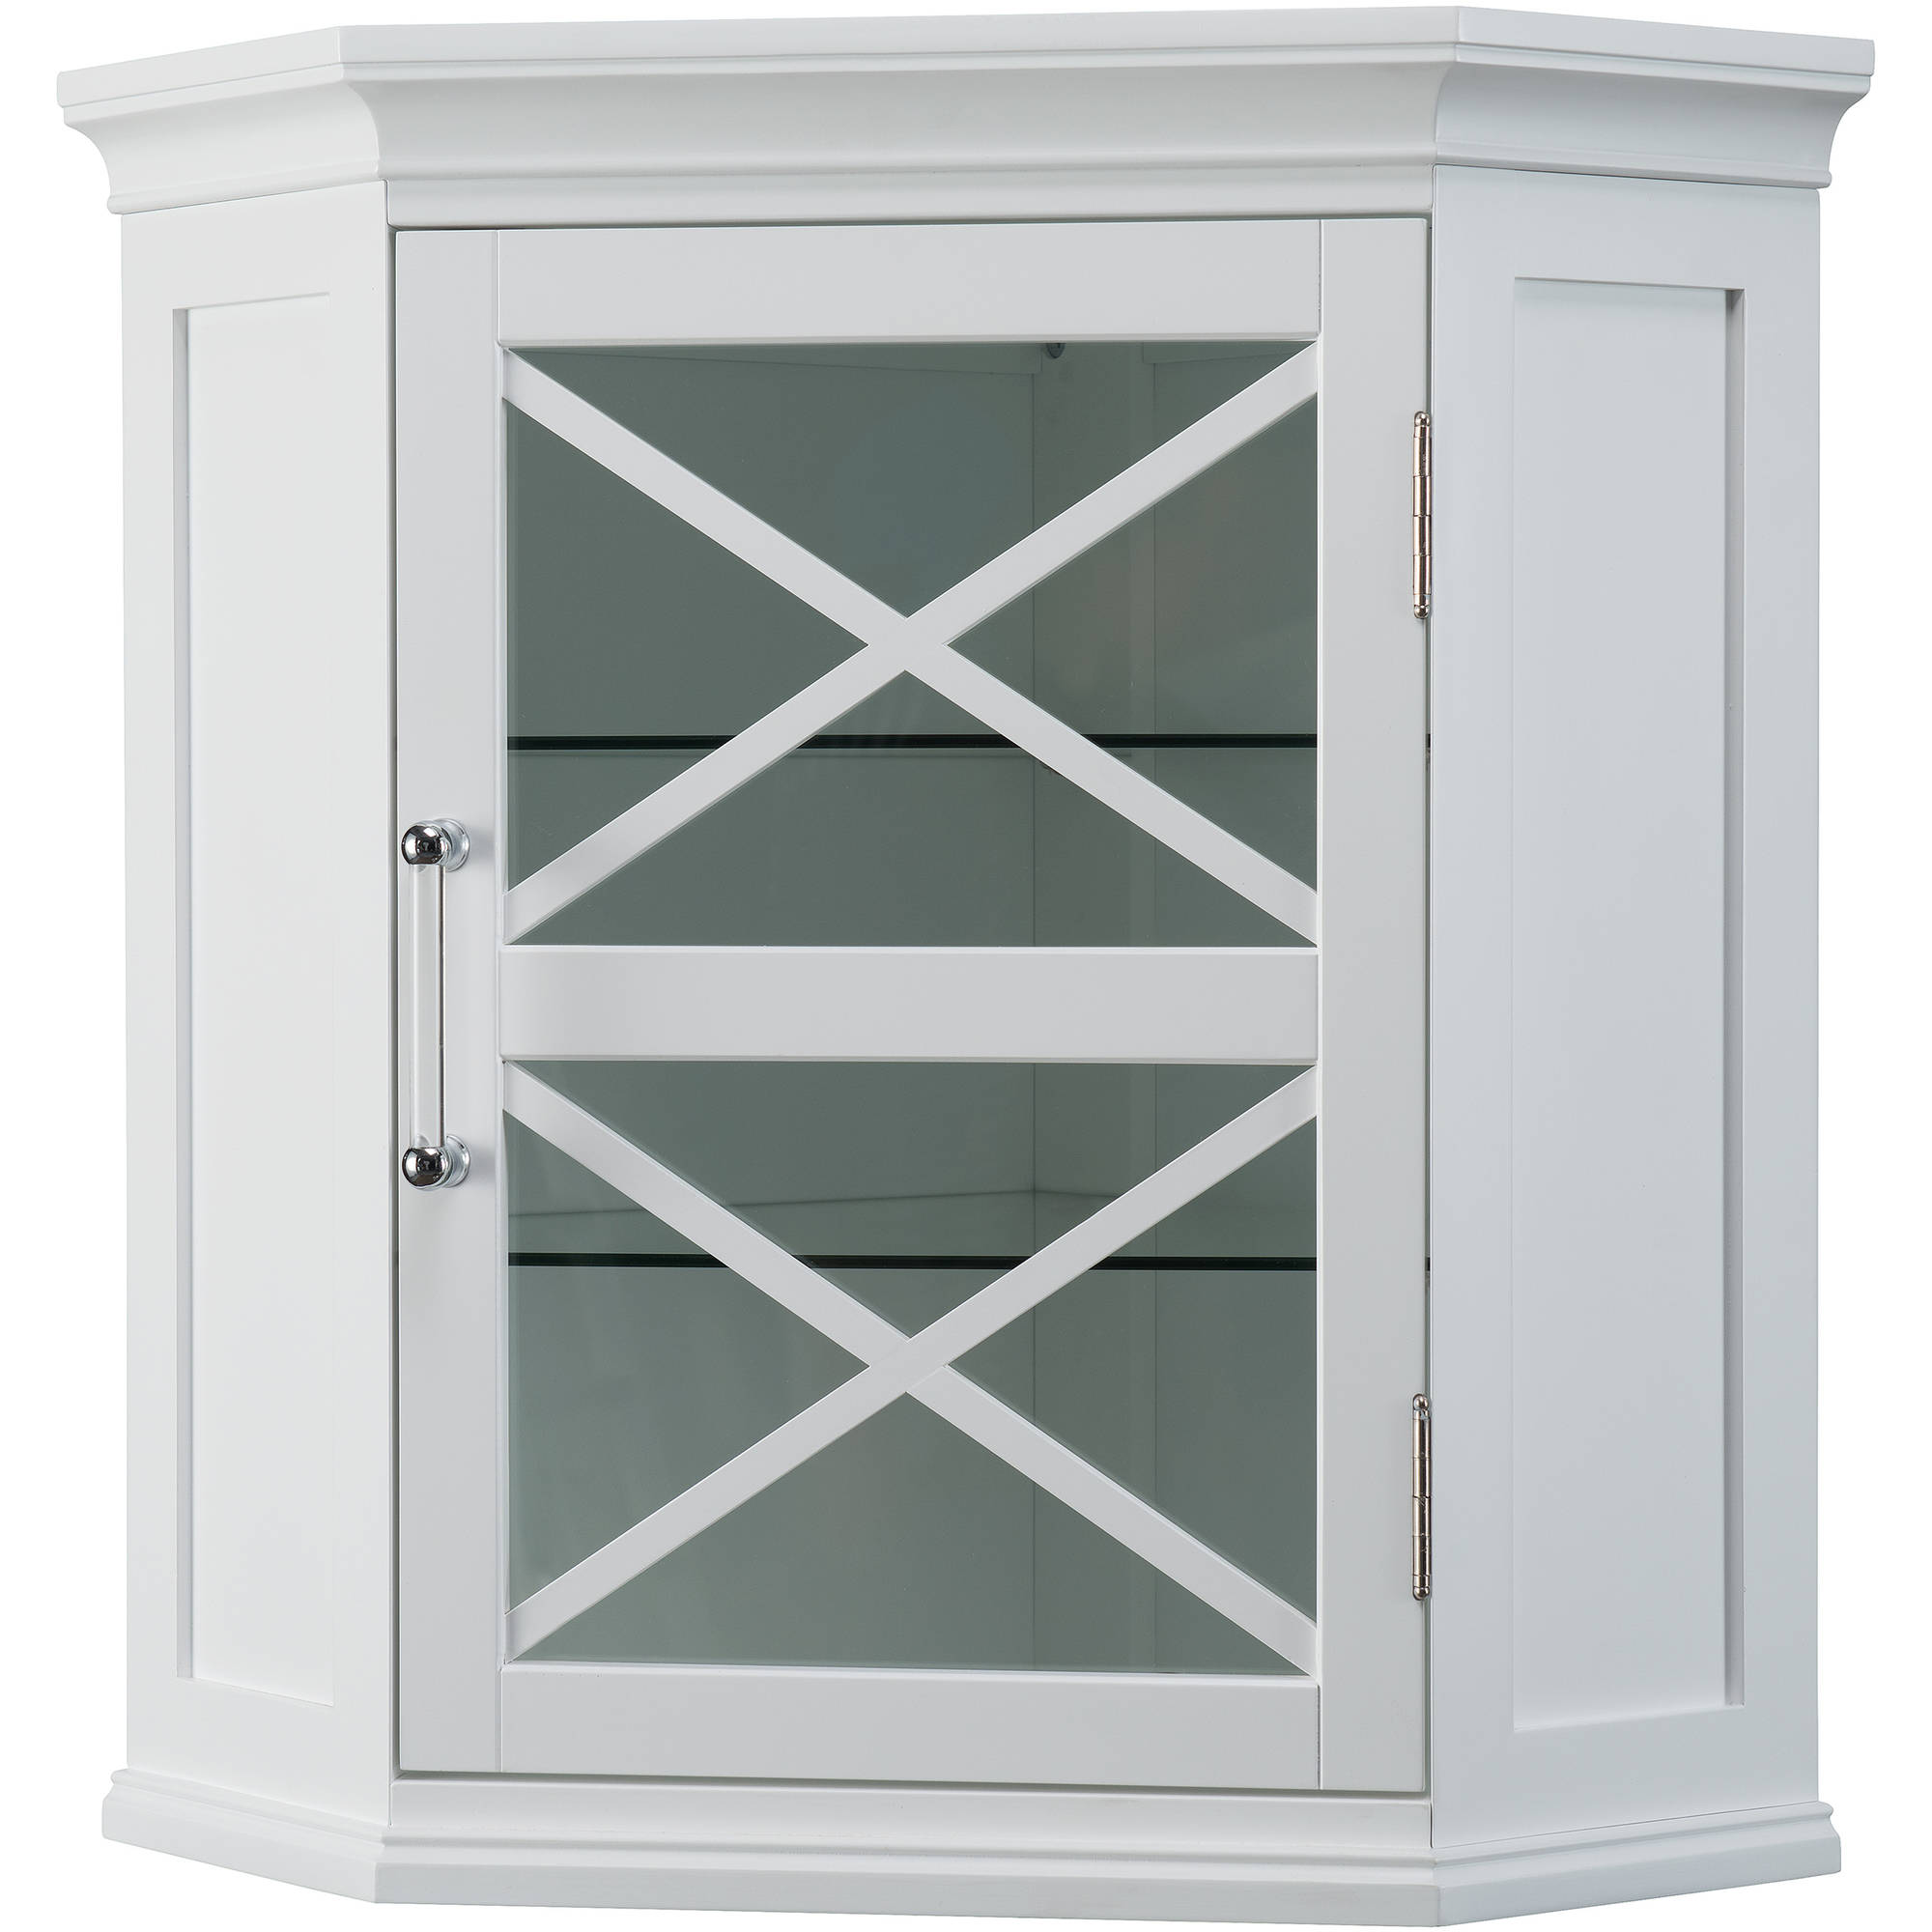 Blue Ridge Corner Floor Cabinet With Glass Door In White For Bathroom Storage Cabinets Cupboards Home Garden